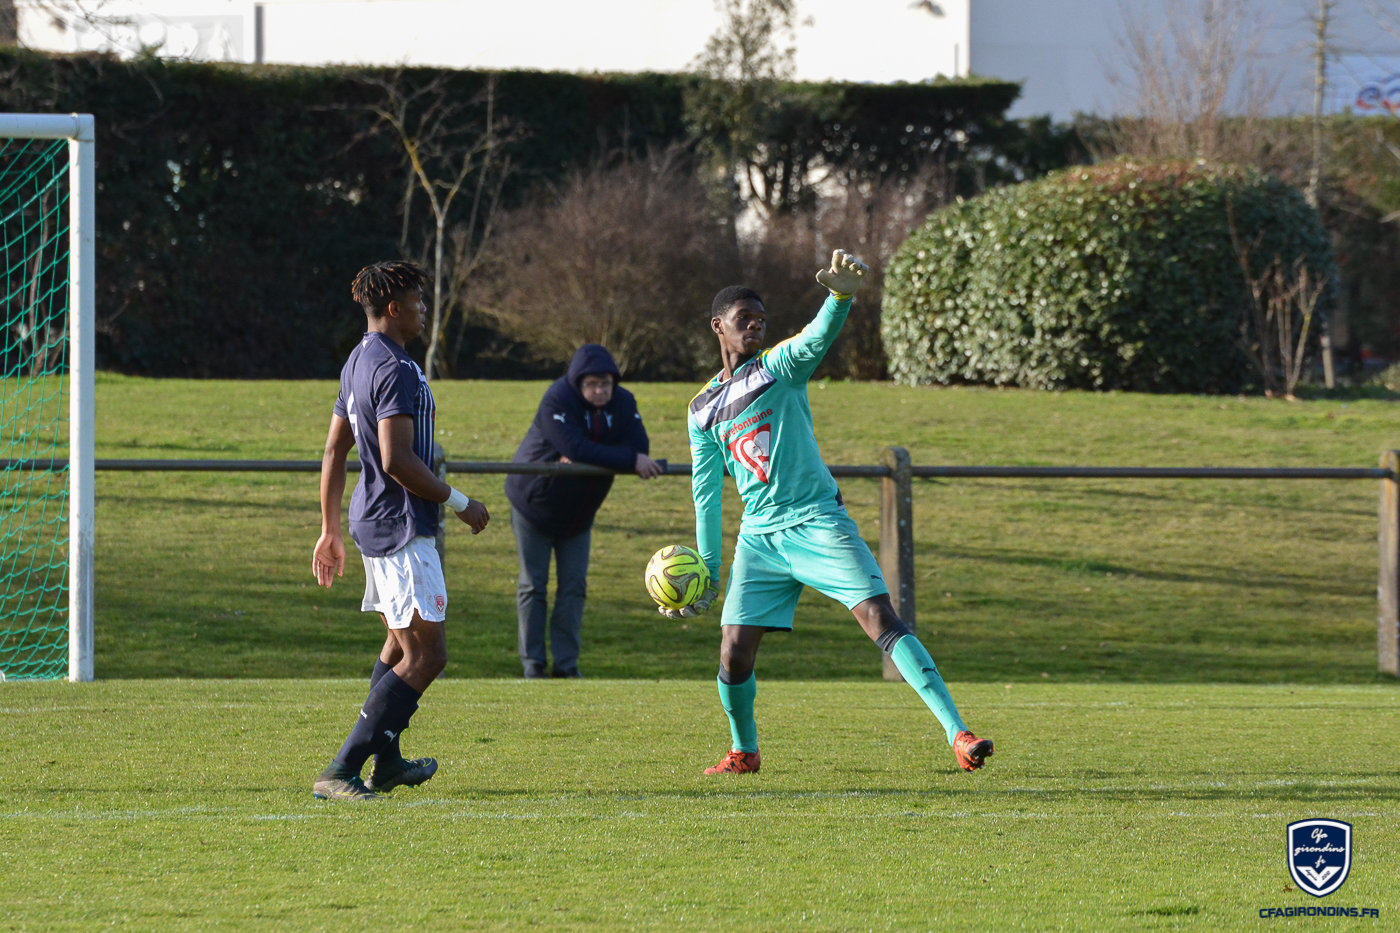 Cfa Girondins : Une victoire guadeloupéenne pour finir, Rouyard titulaire - Formation Girondins